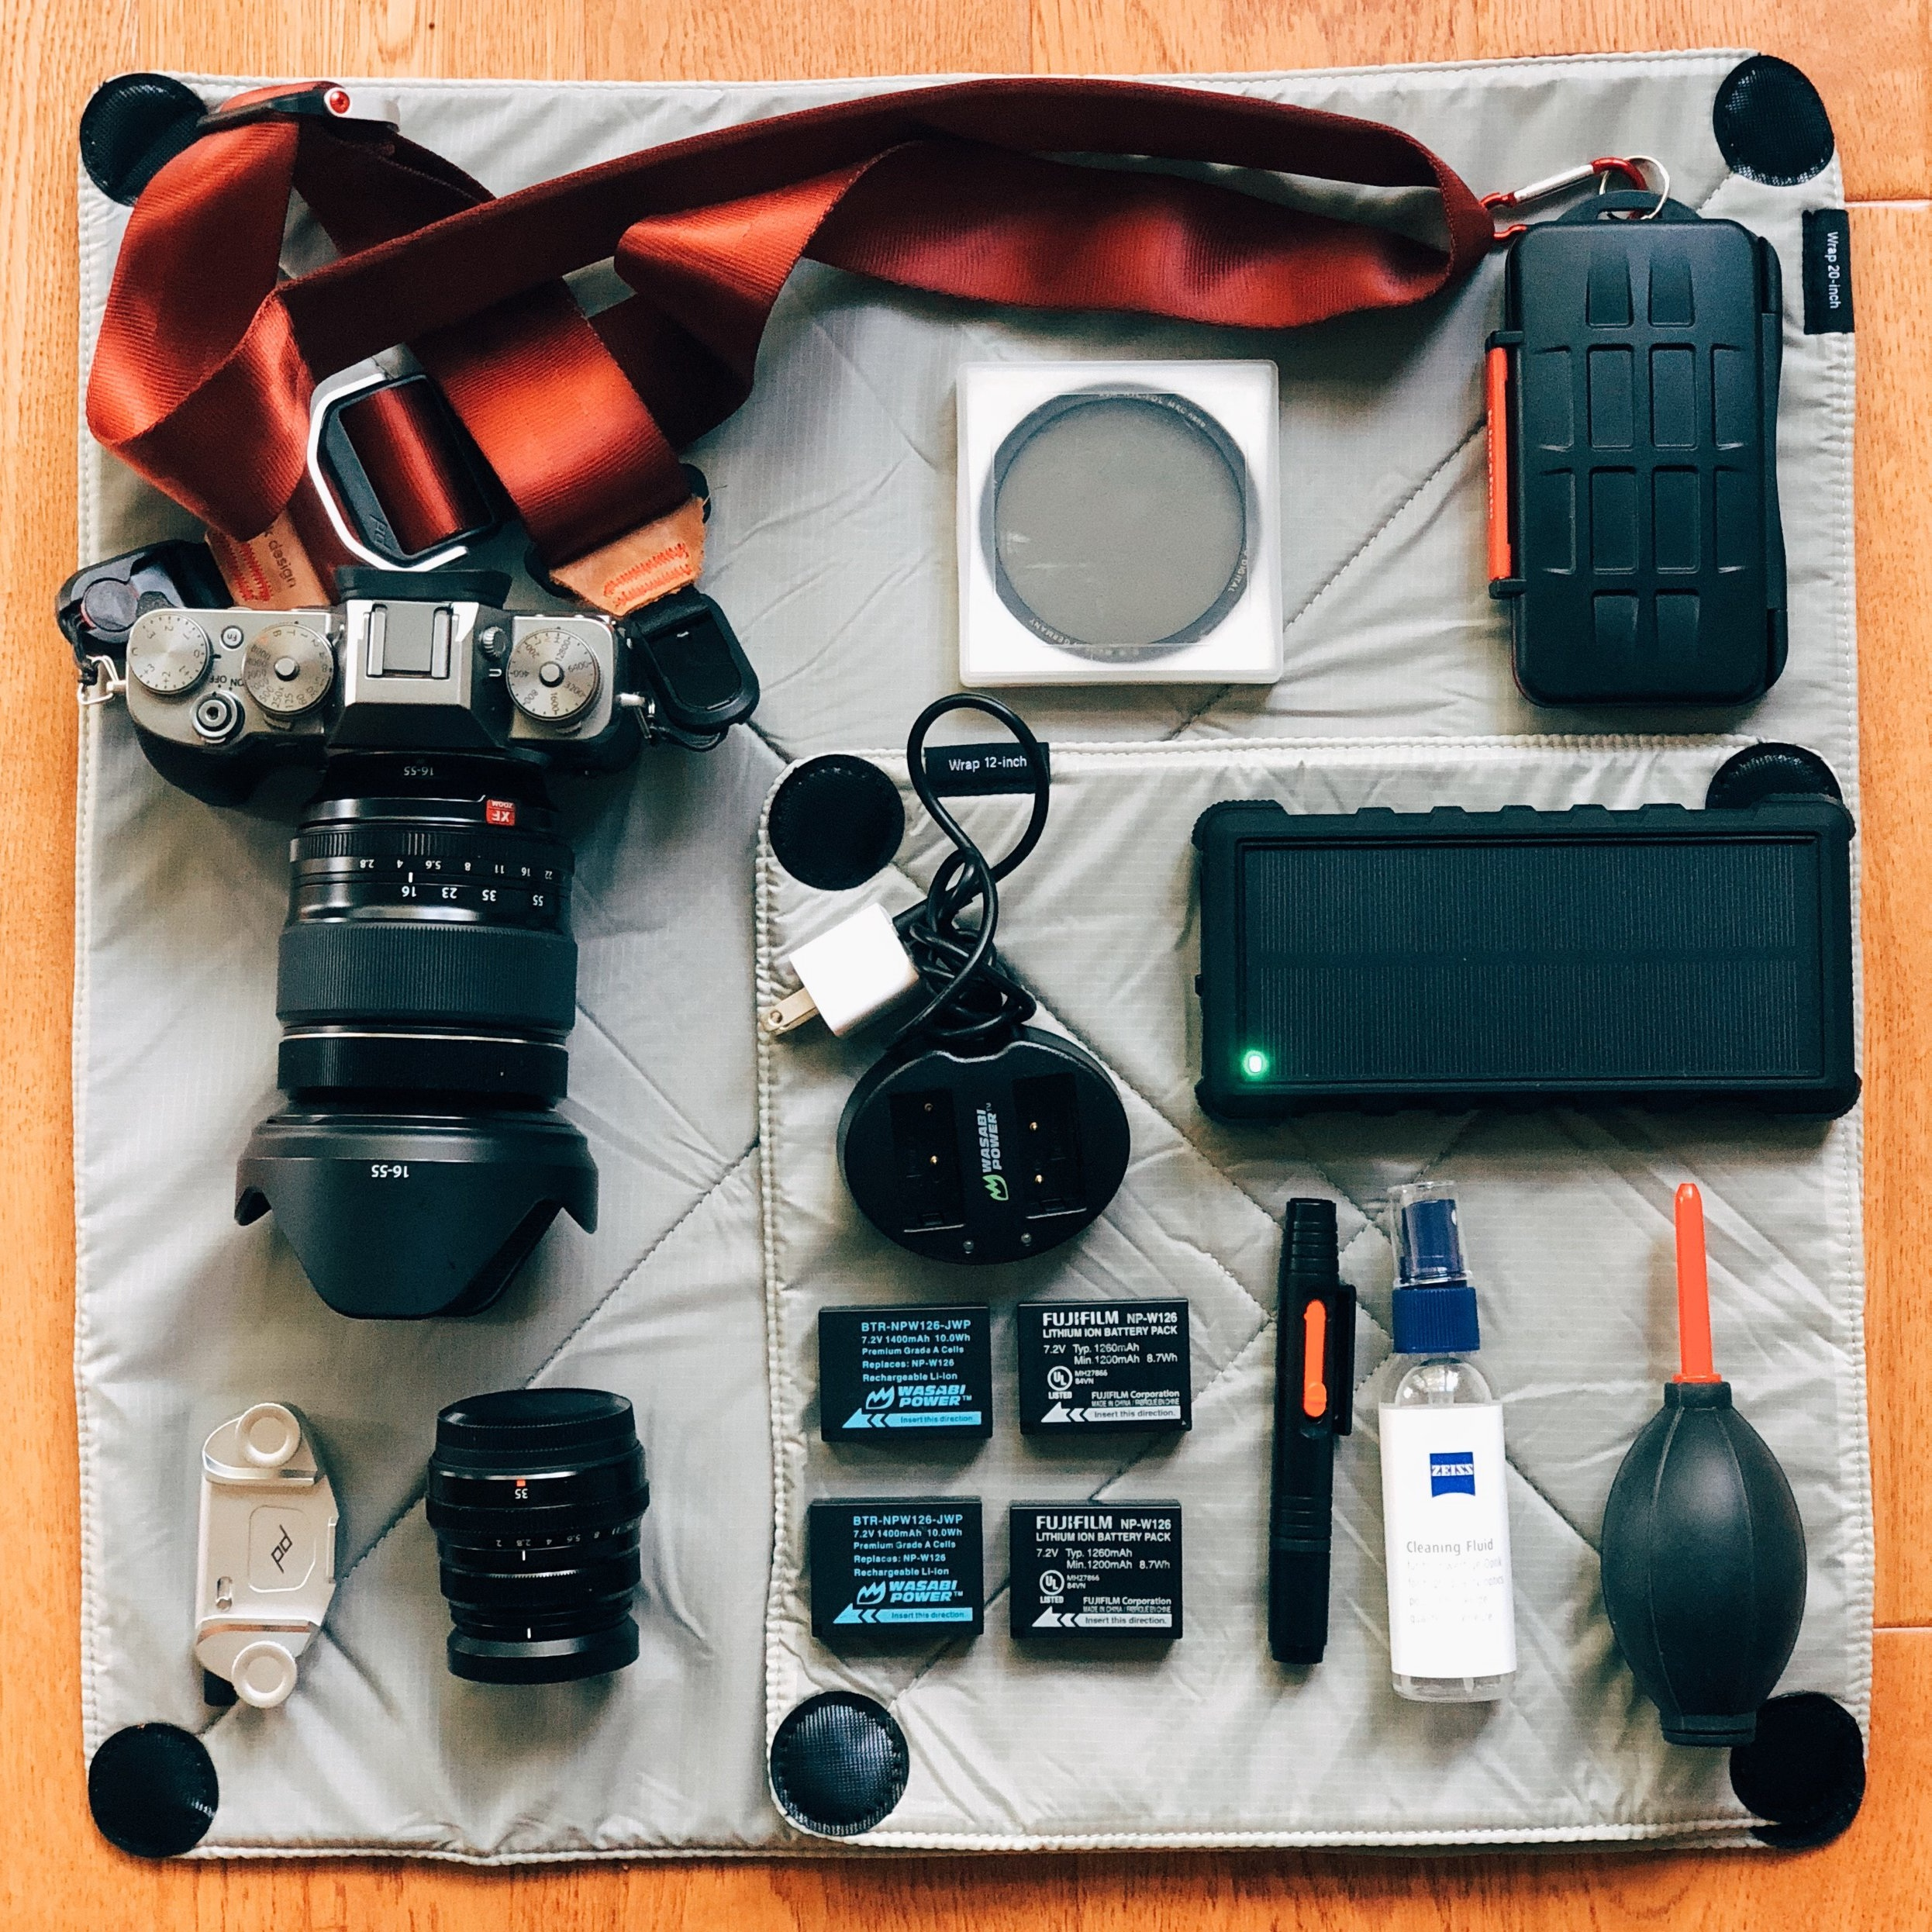 Camera gear for Peru. #packinglist #peru #packinglistforperu